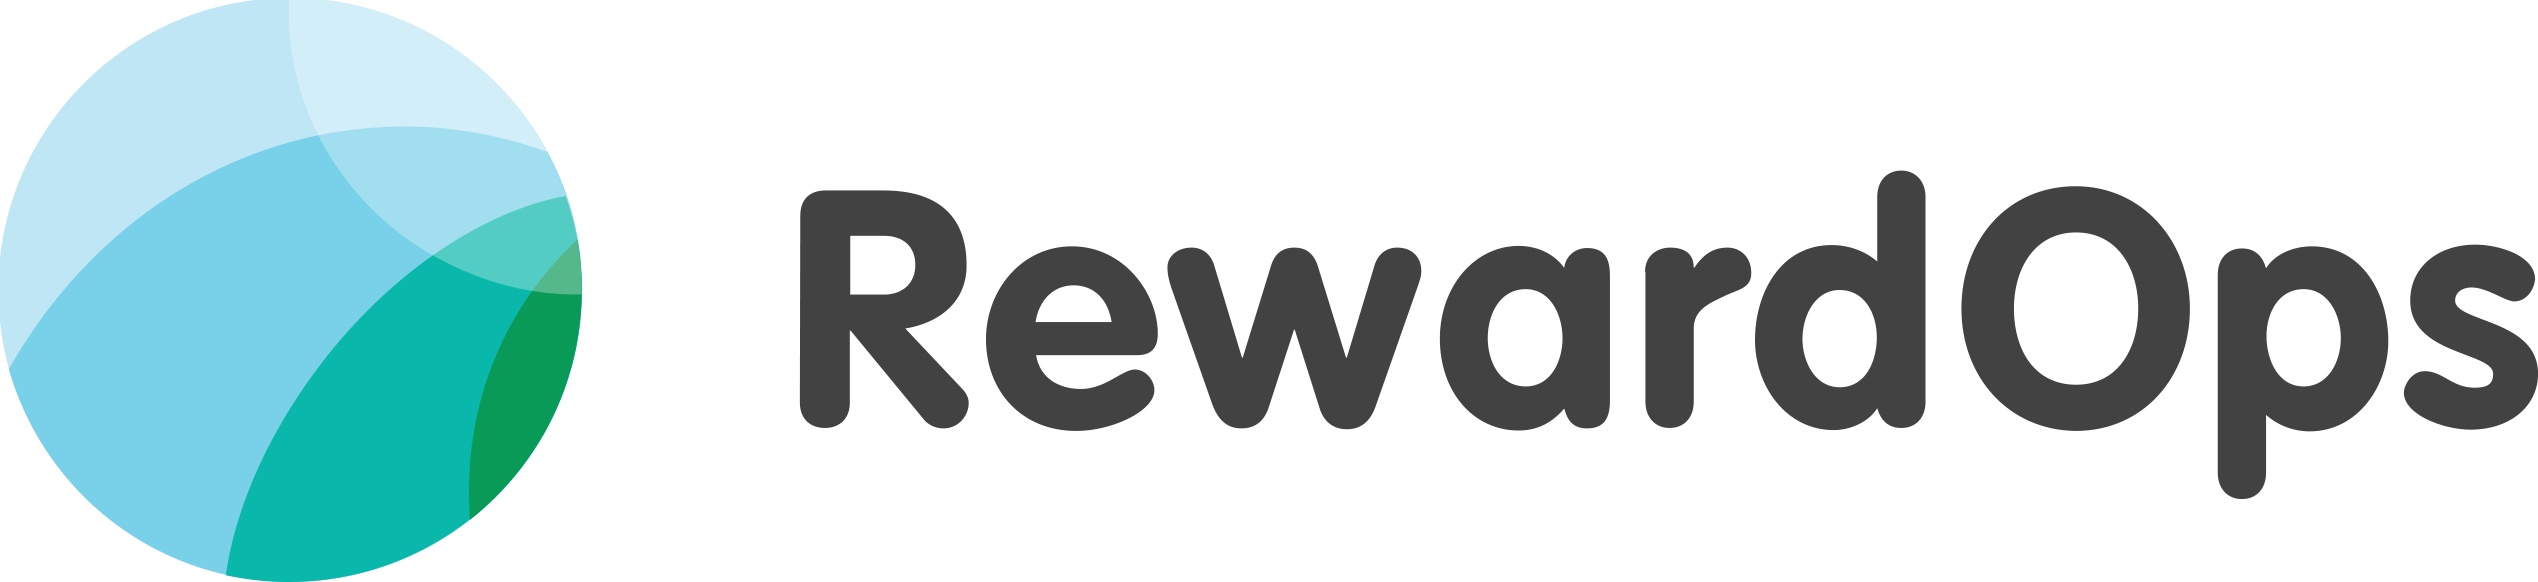 RewardOps logo